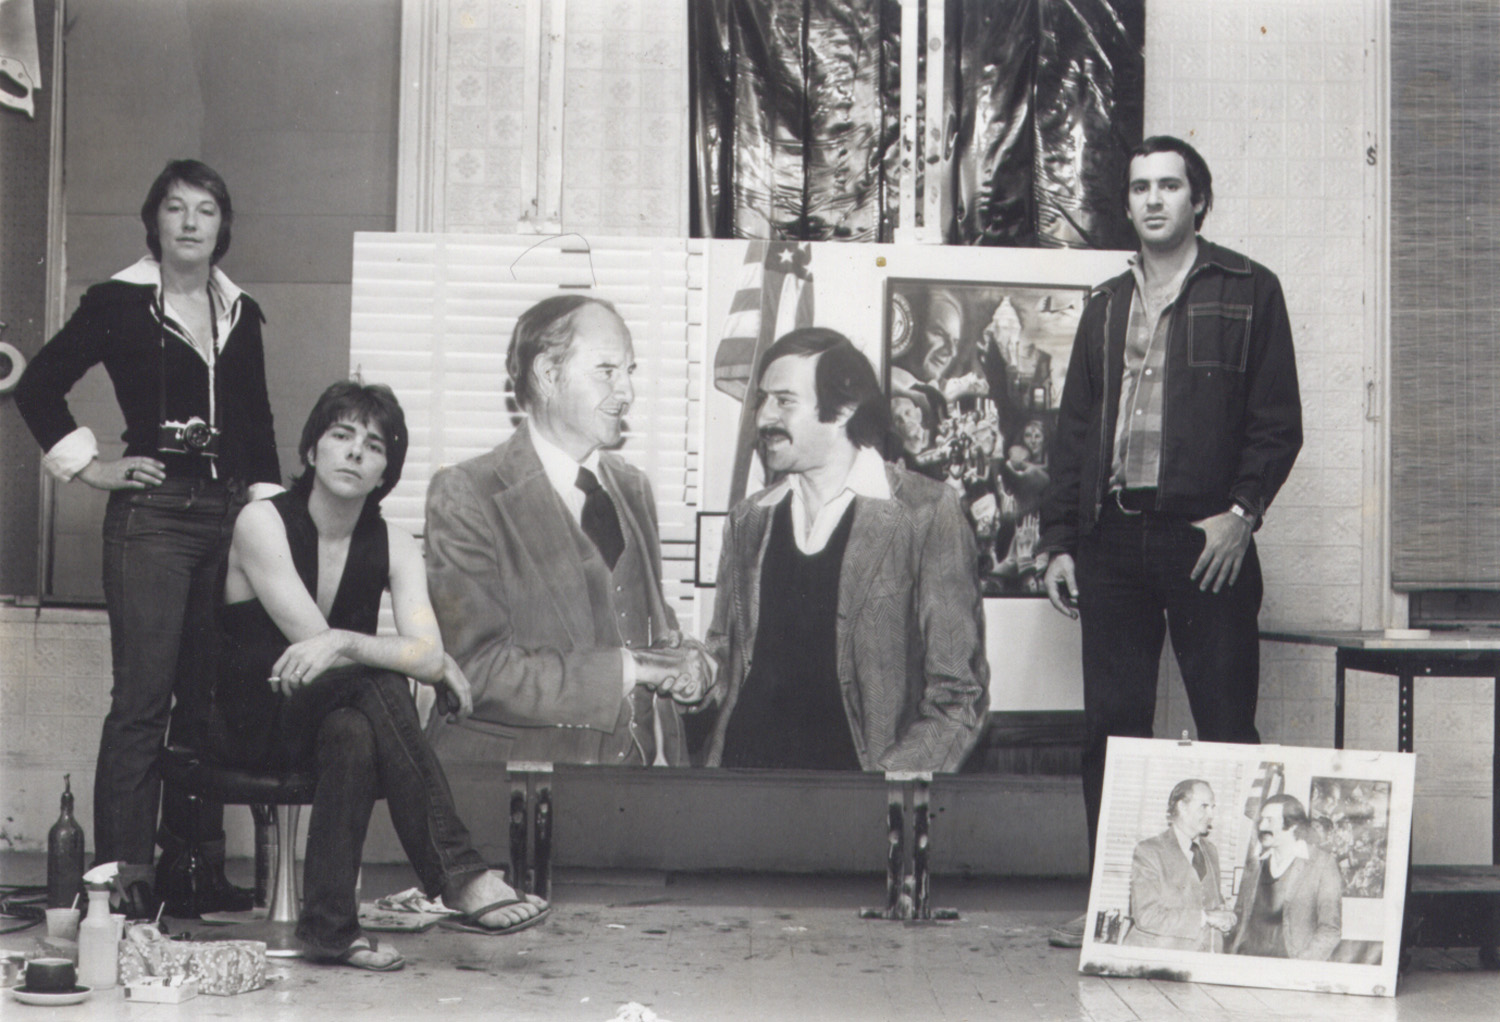 Miller, Ringma & Hoppe posing with the painting